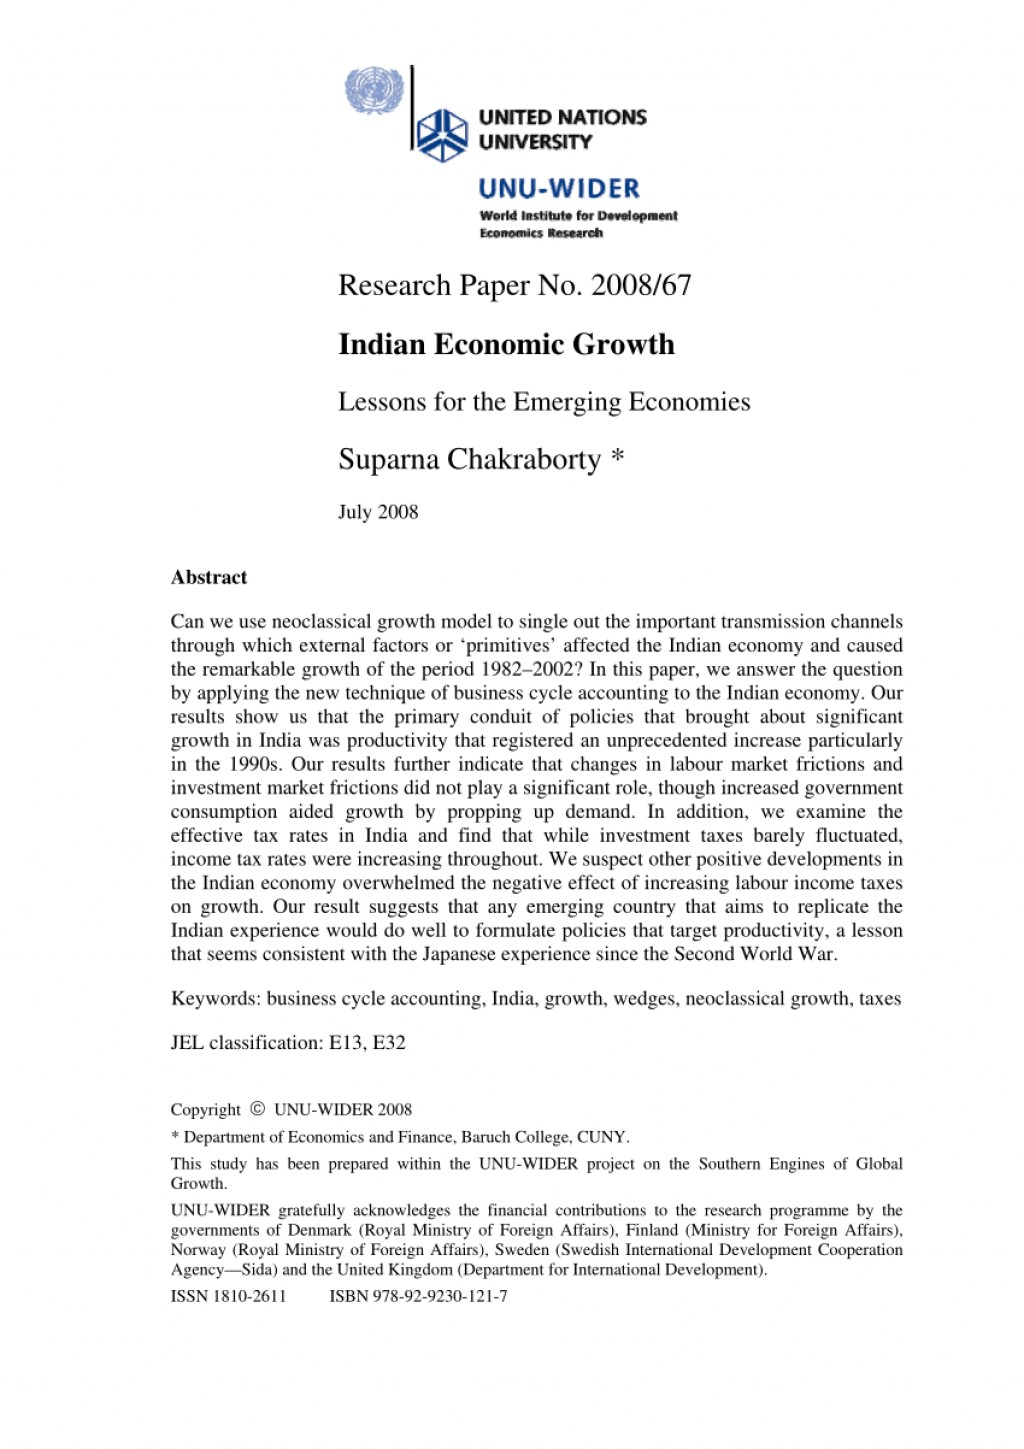 002 Largepreview Research Paper Indian Economic Breathtaking Growth Large